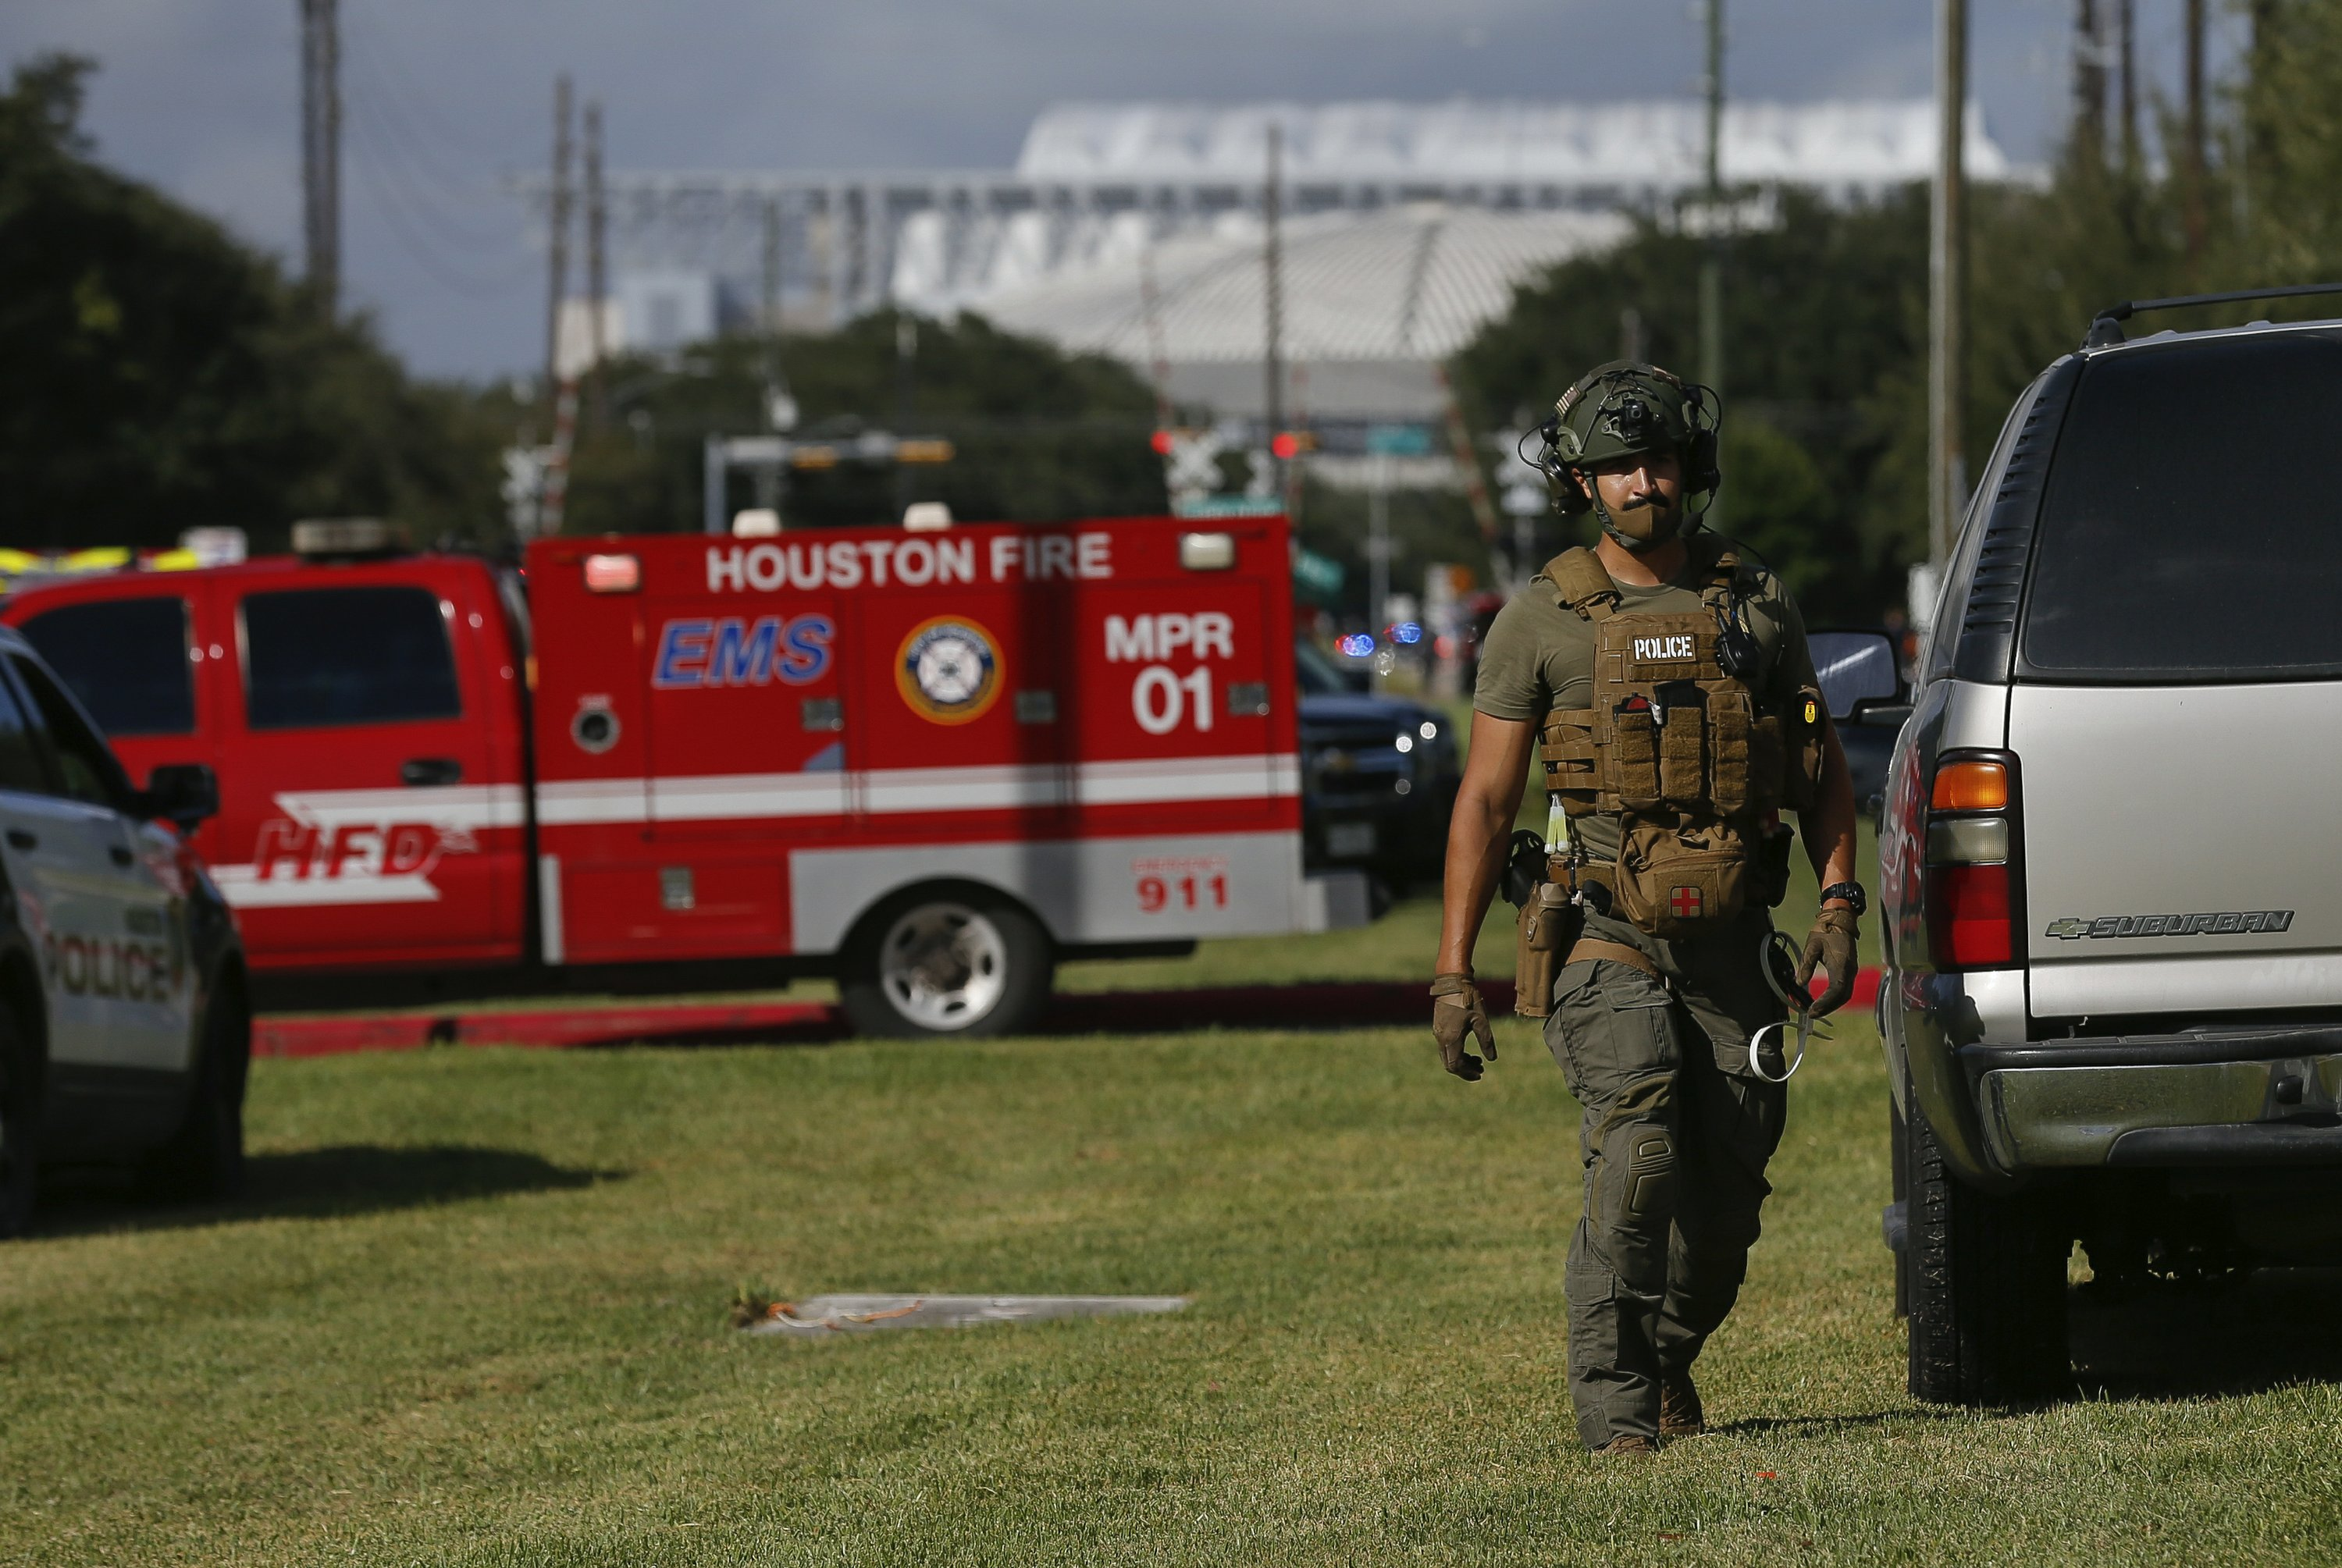 Houston Police Officer Killed, Another Wounded in Shooting at Apartment Complex